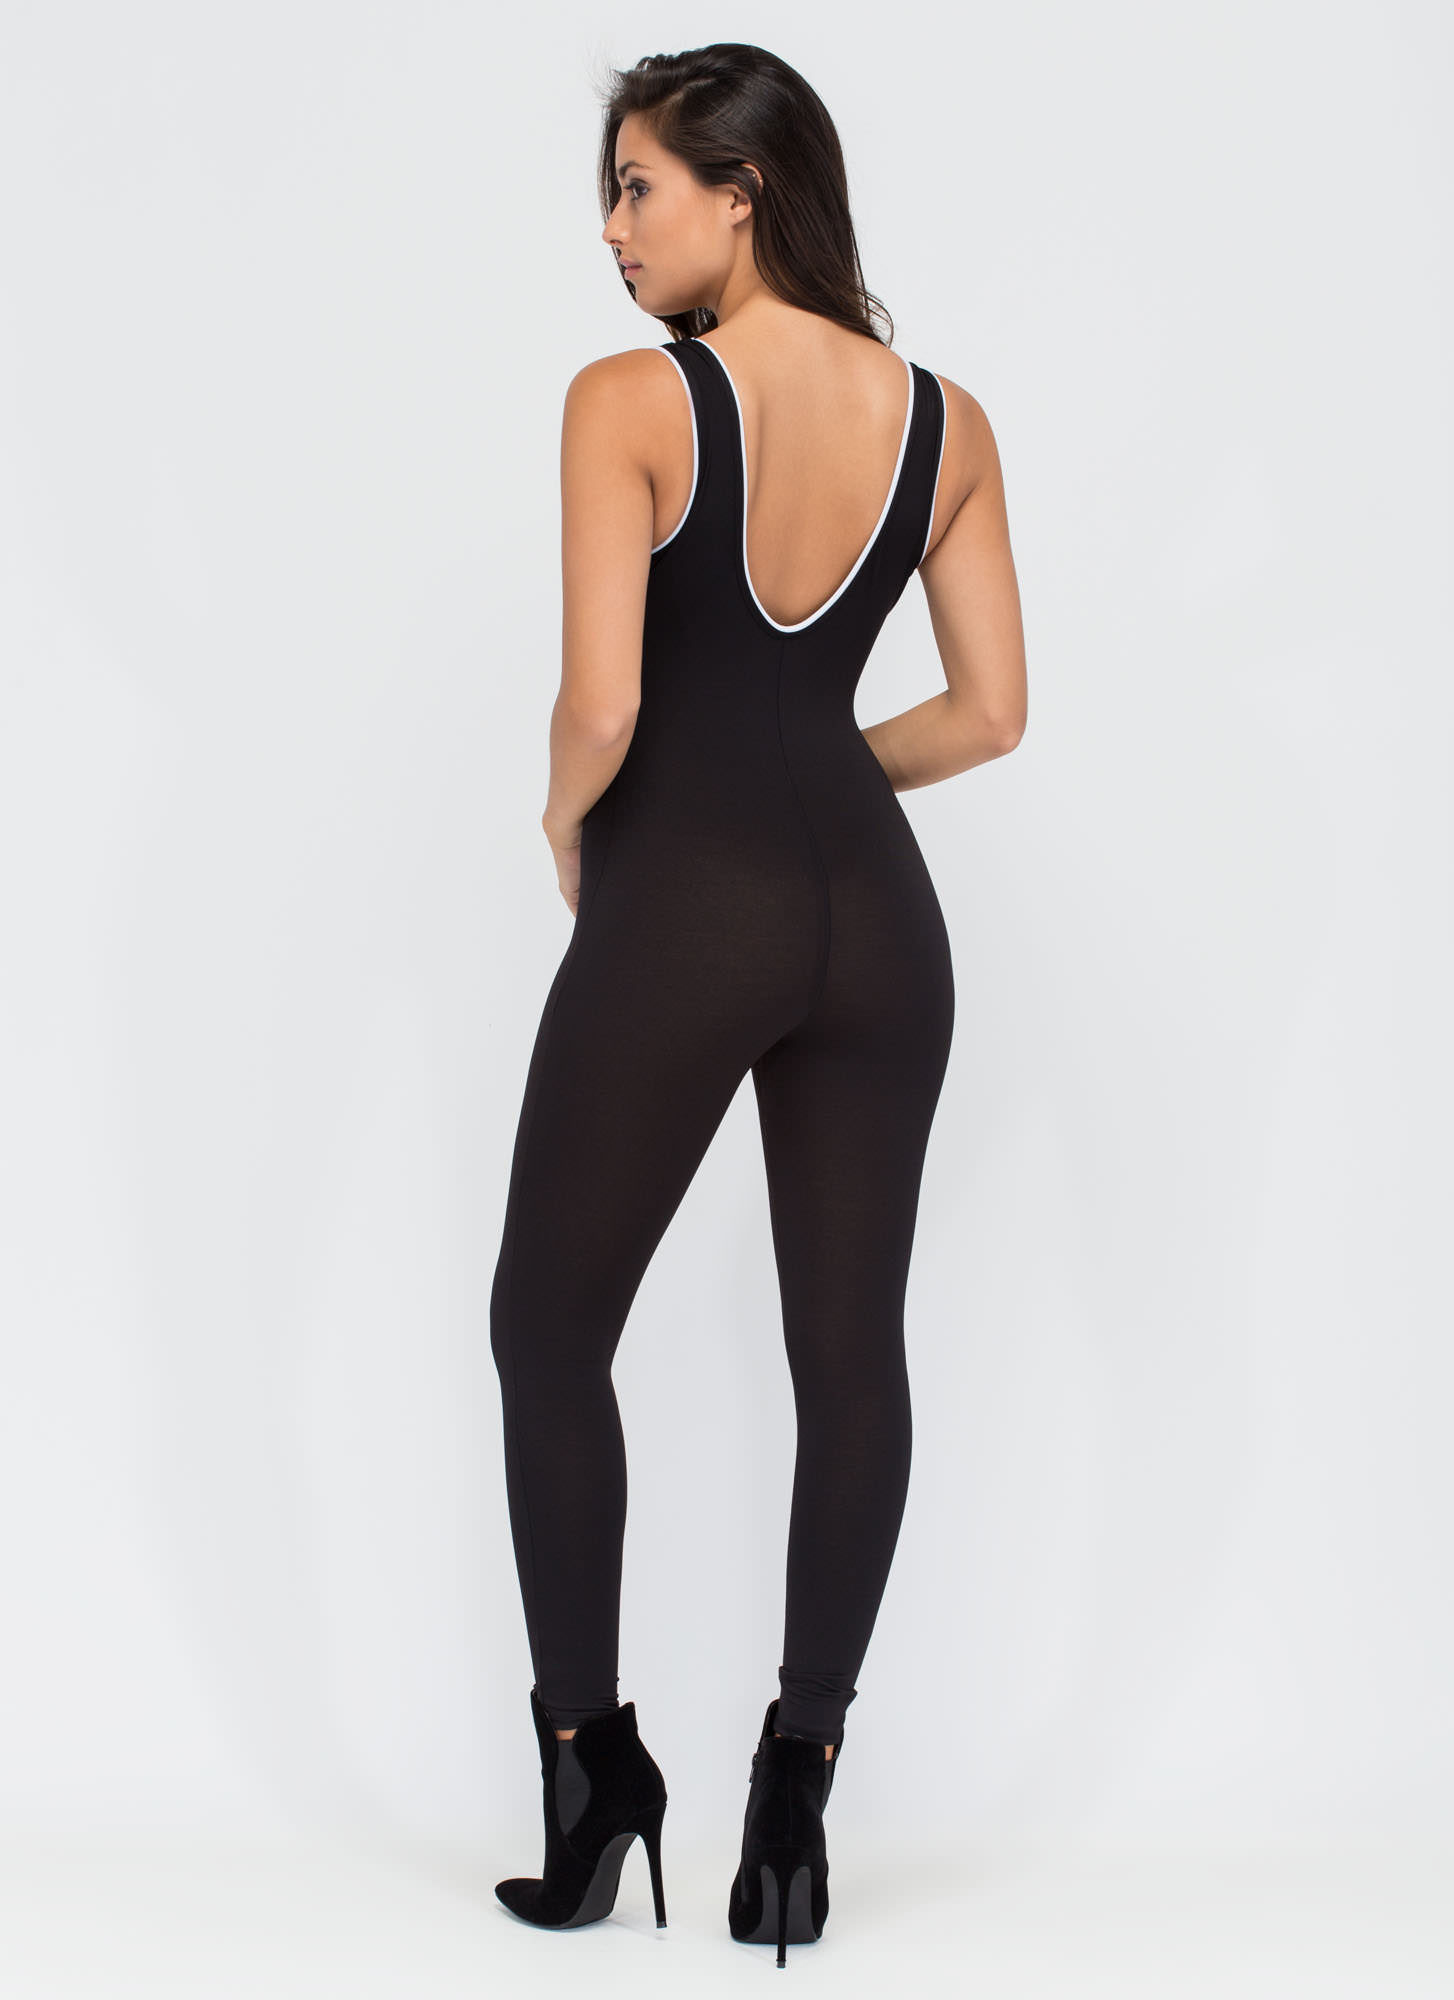 Totally Killin' It Athleisure Jumpsuit BLACK